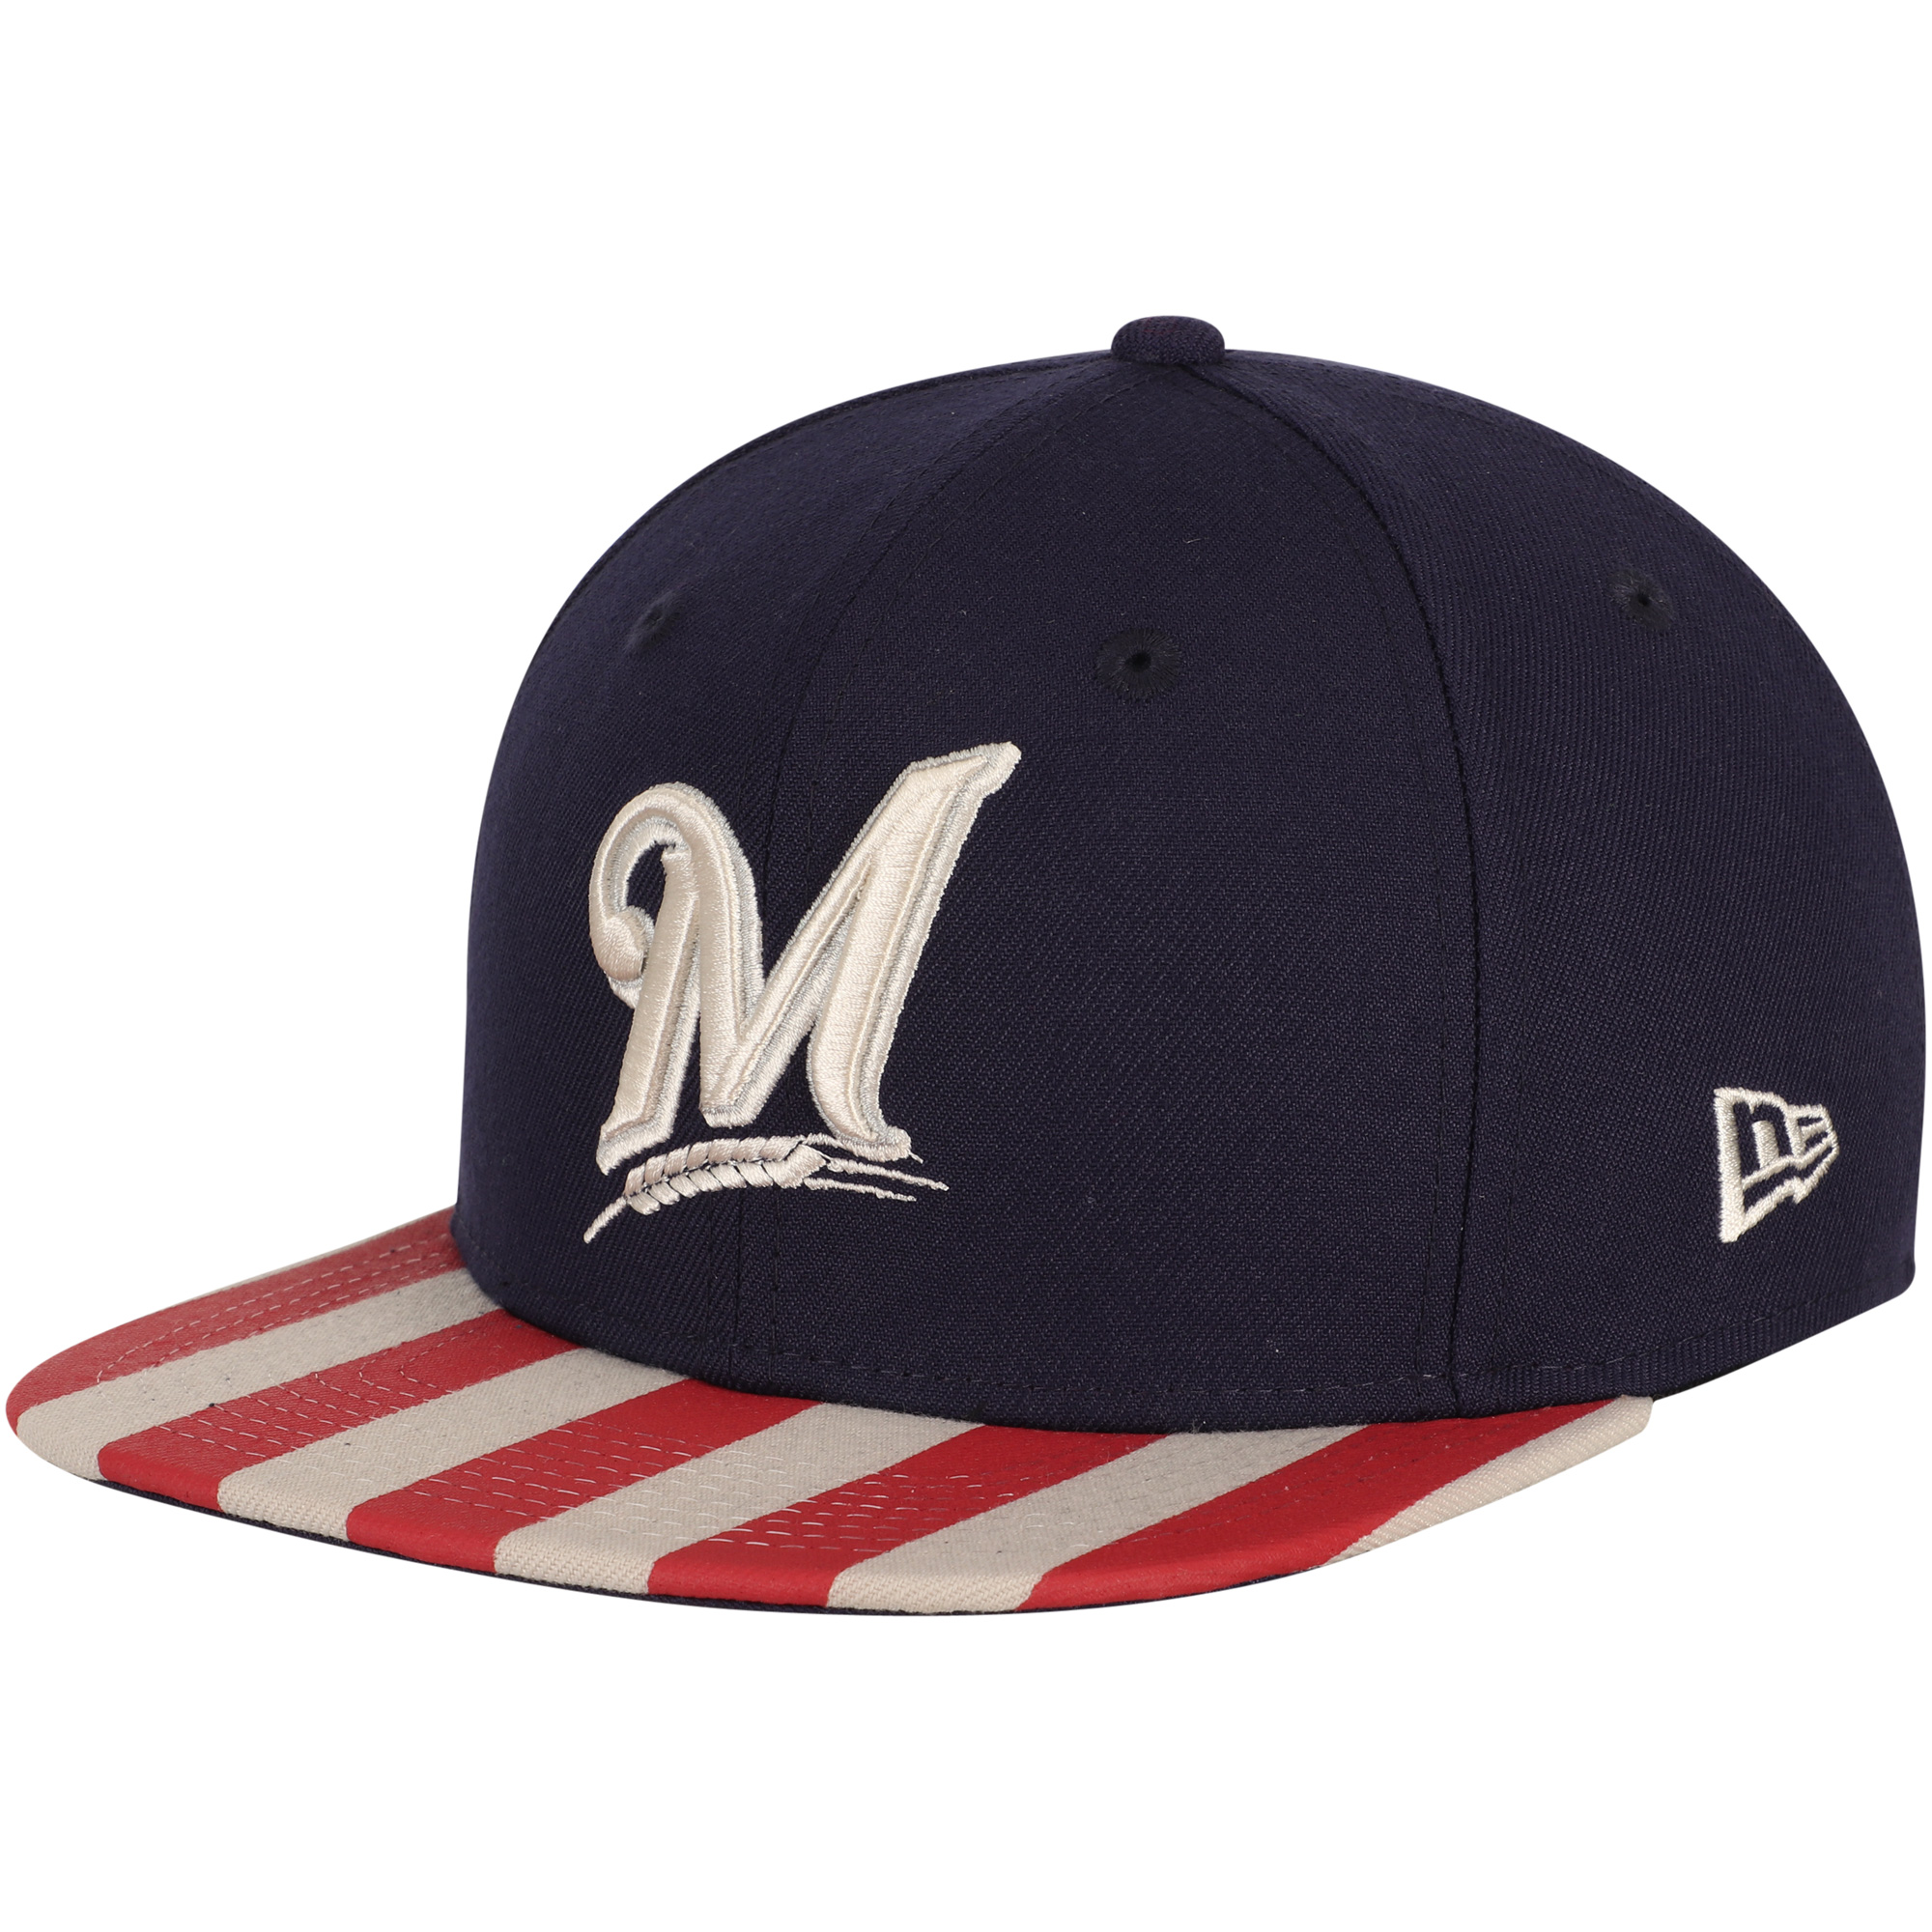 Milwaukee Brewers New Era Fully Flagged 9FIFTY Adjustable Hat - Navy/Red - OSFA